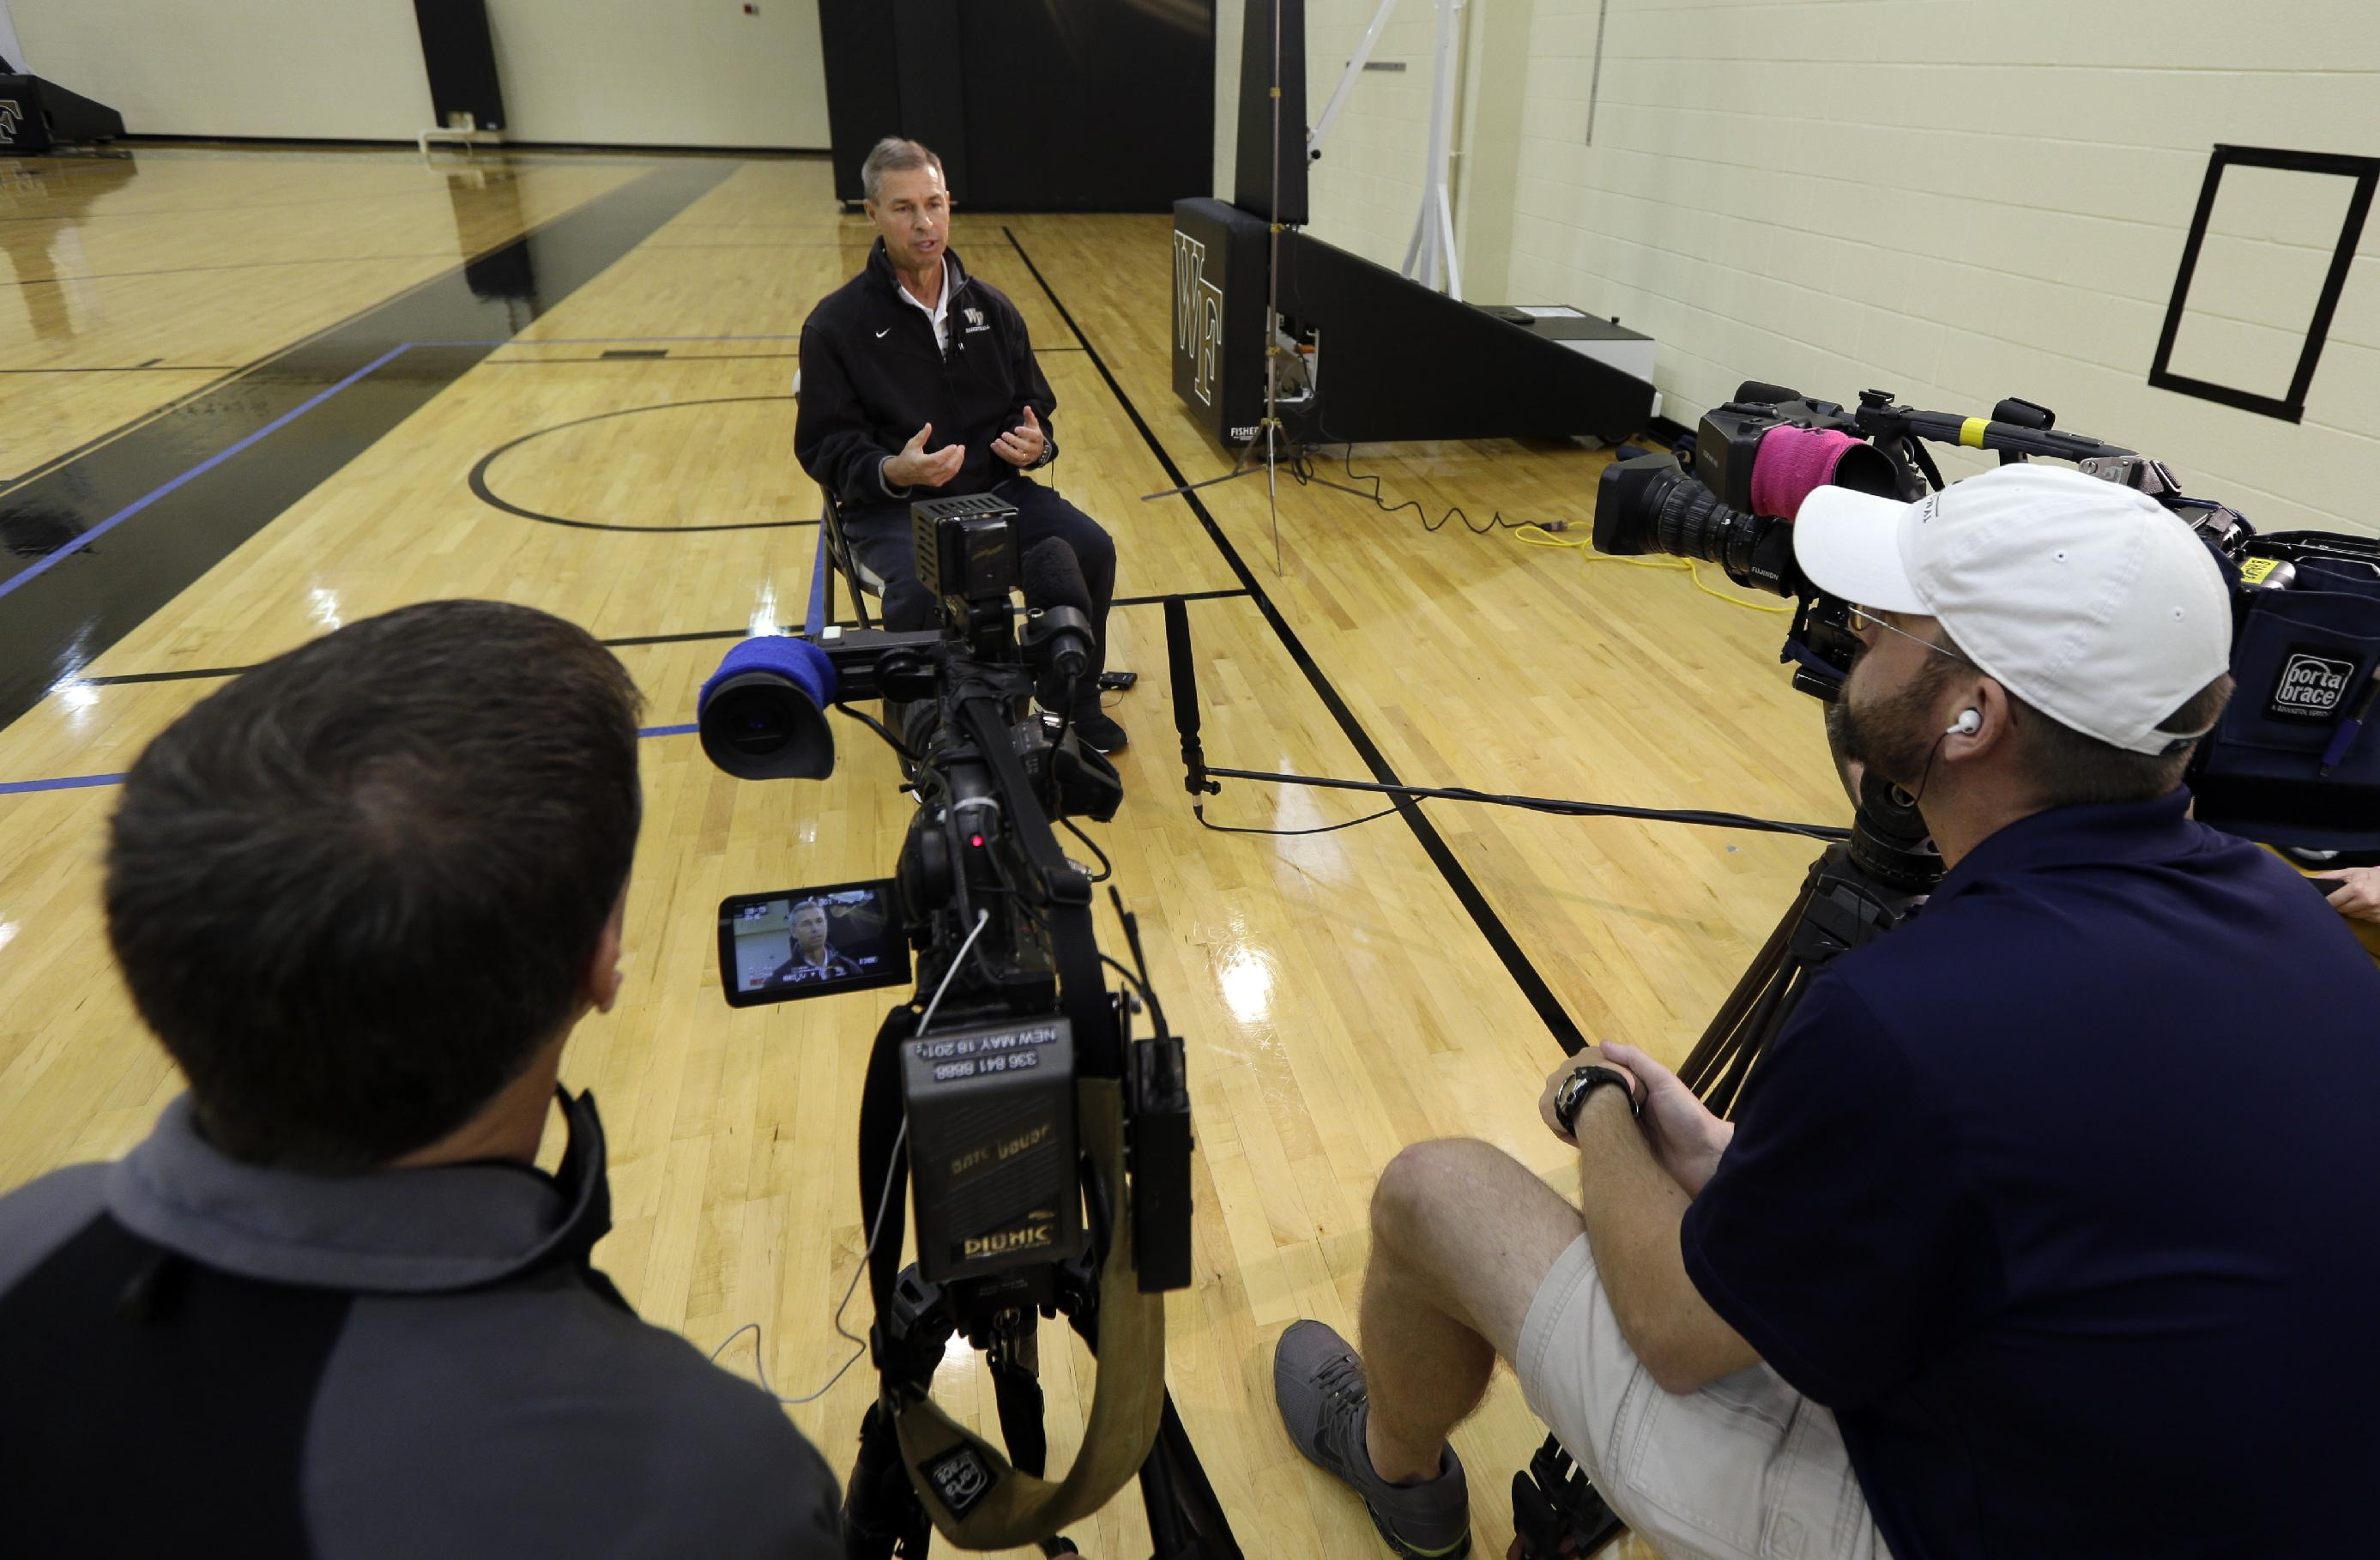 Wake Forest head coach Jeff Bzdelik is interviewed during NCAA college basketball media day in Winston-Salem, N.C., Tuesday, Oct. 8, 2013